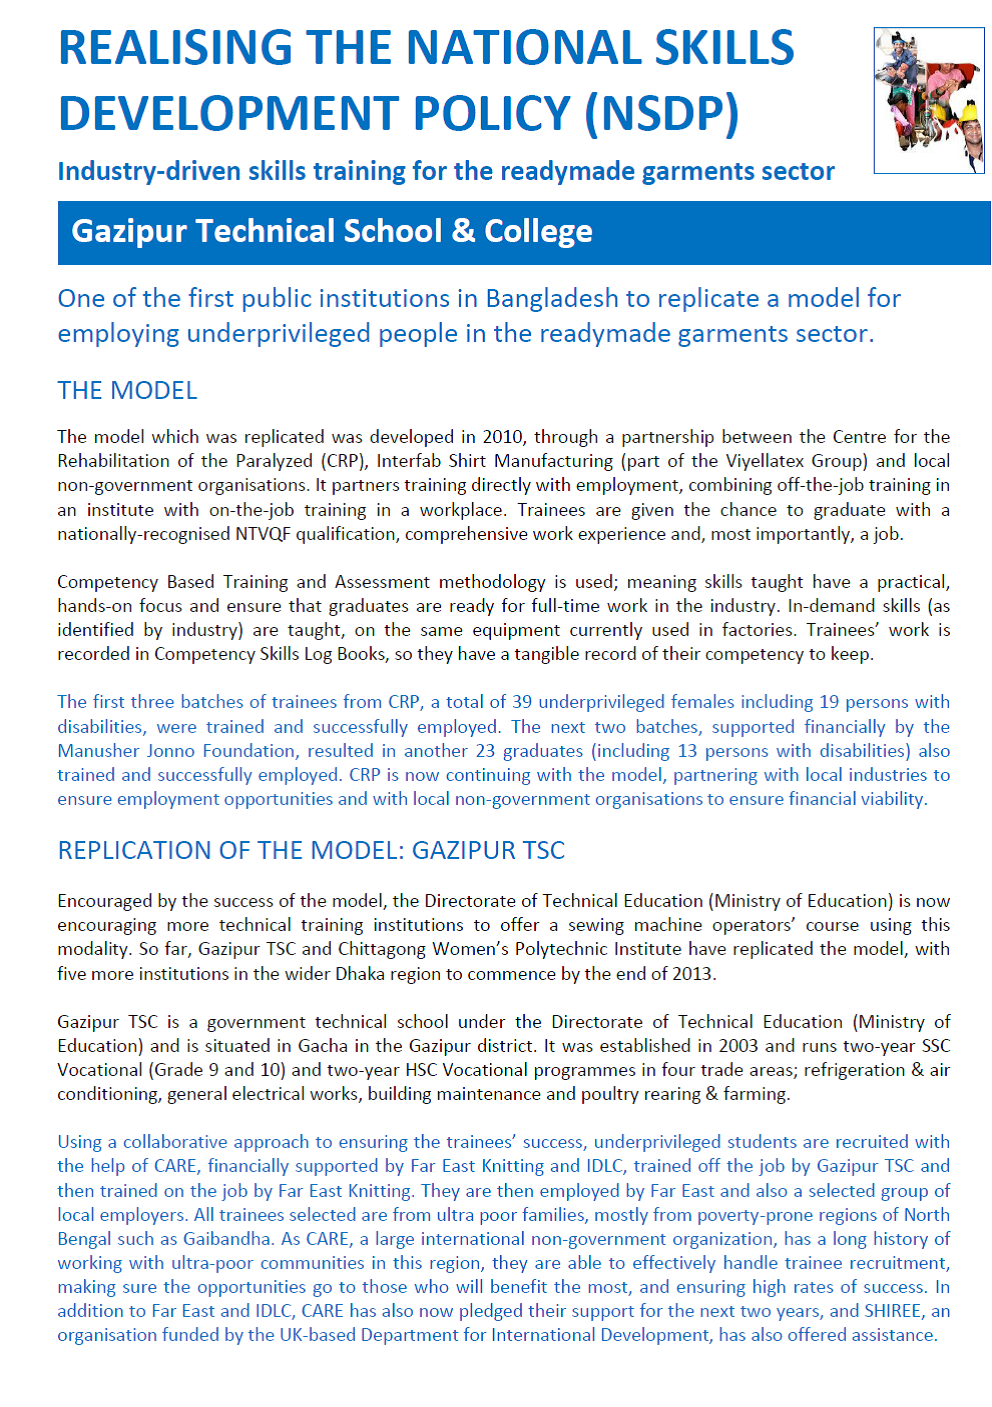 case study gazipur technical school and college industry driven